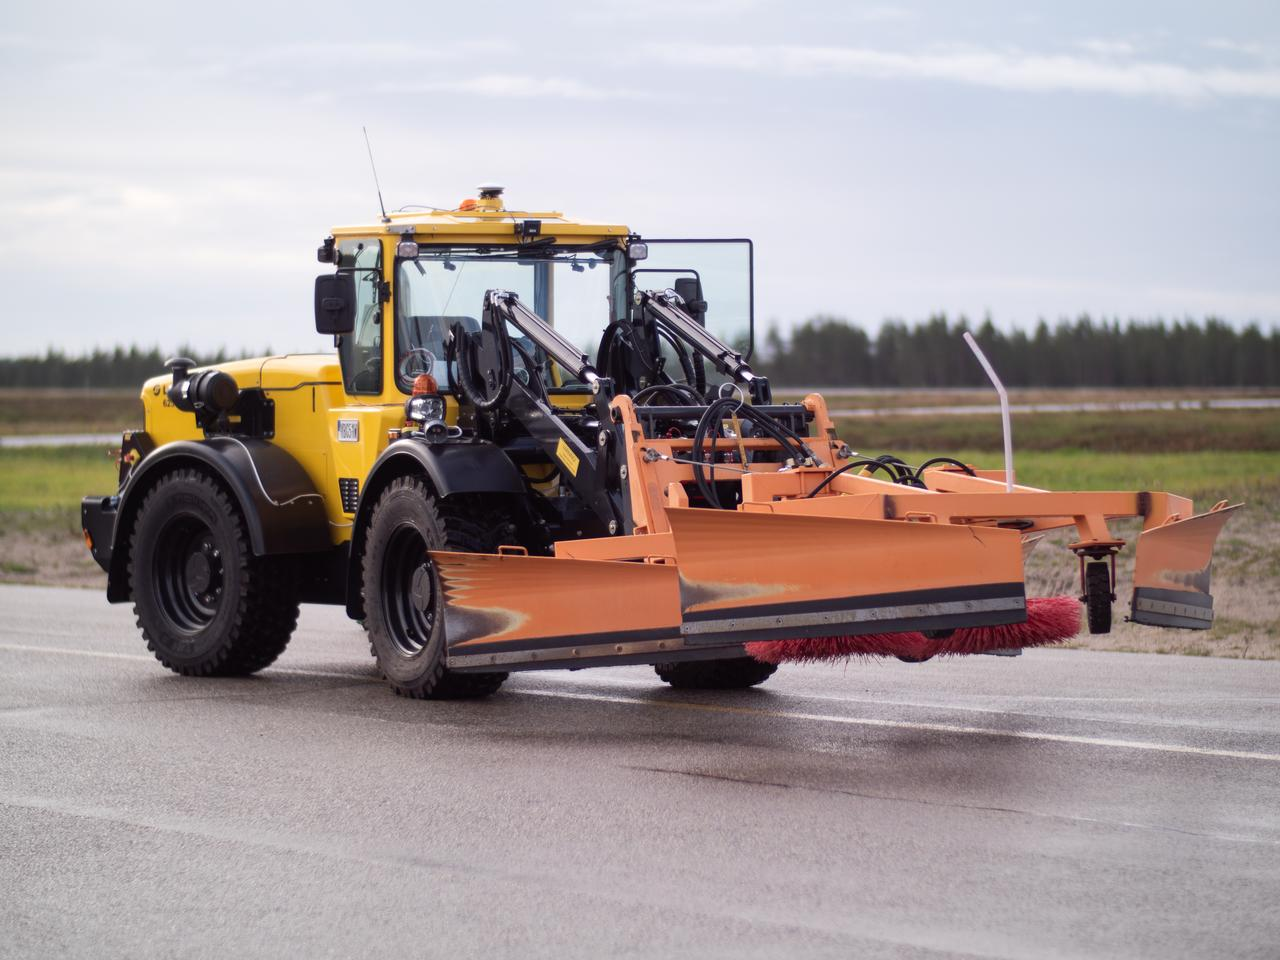 The landing lights scrubber is attached to an automated snow plow